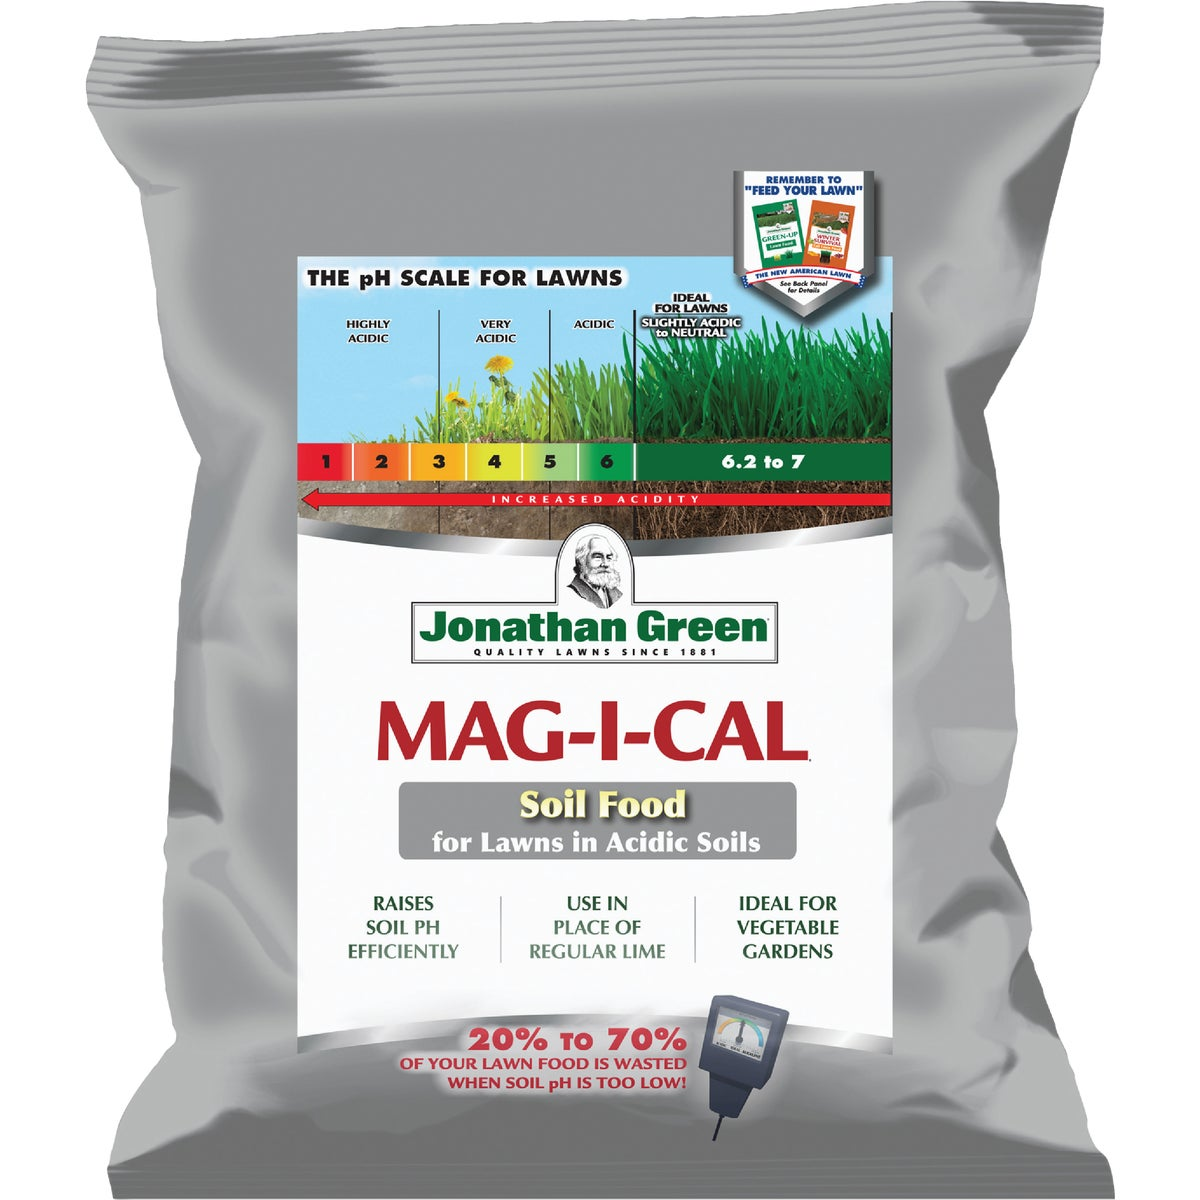 5M MAG-I-CAL FERTILIZER